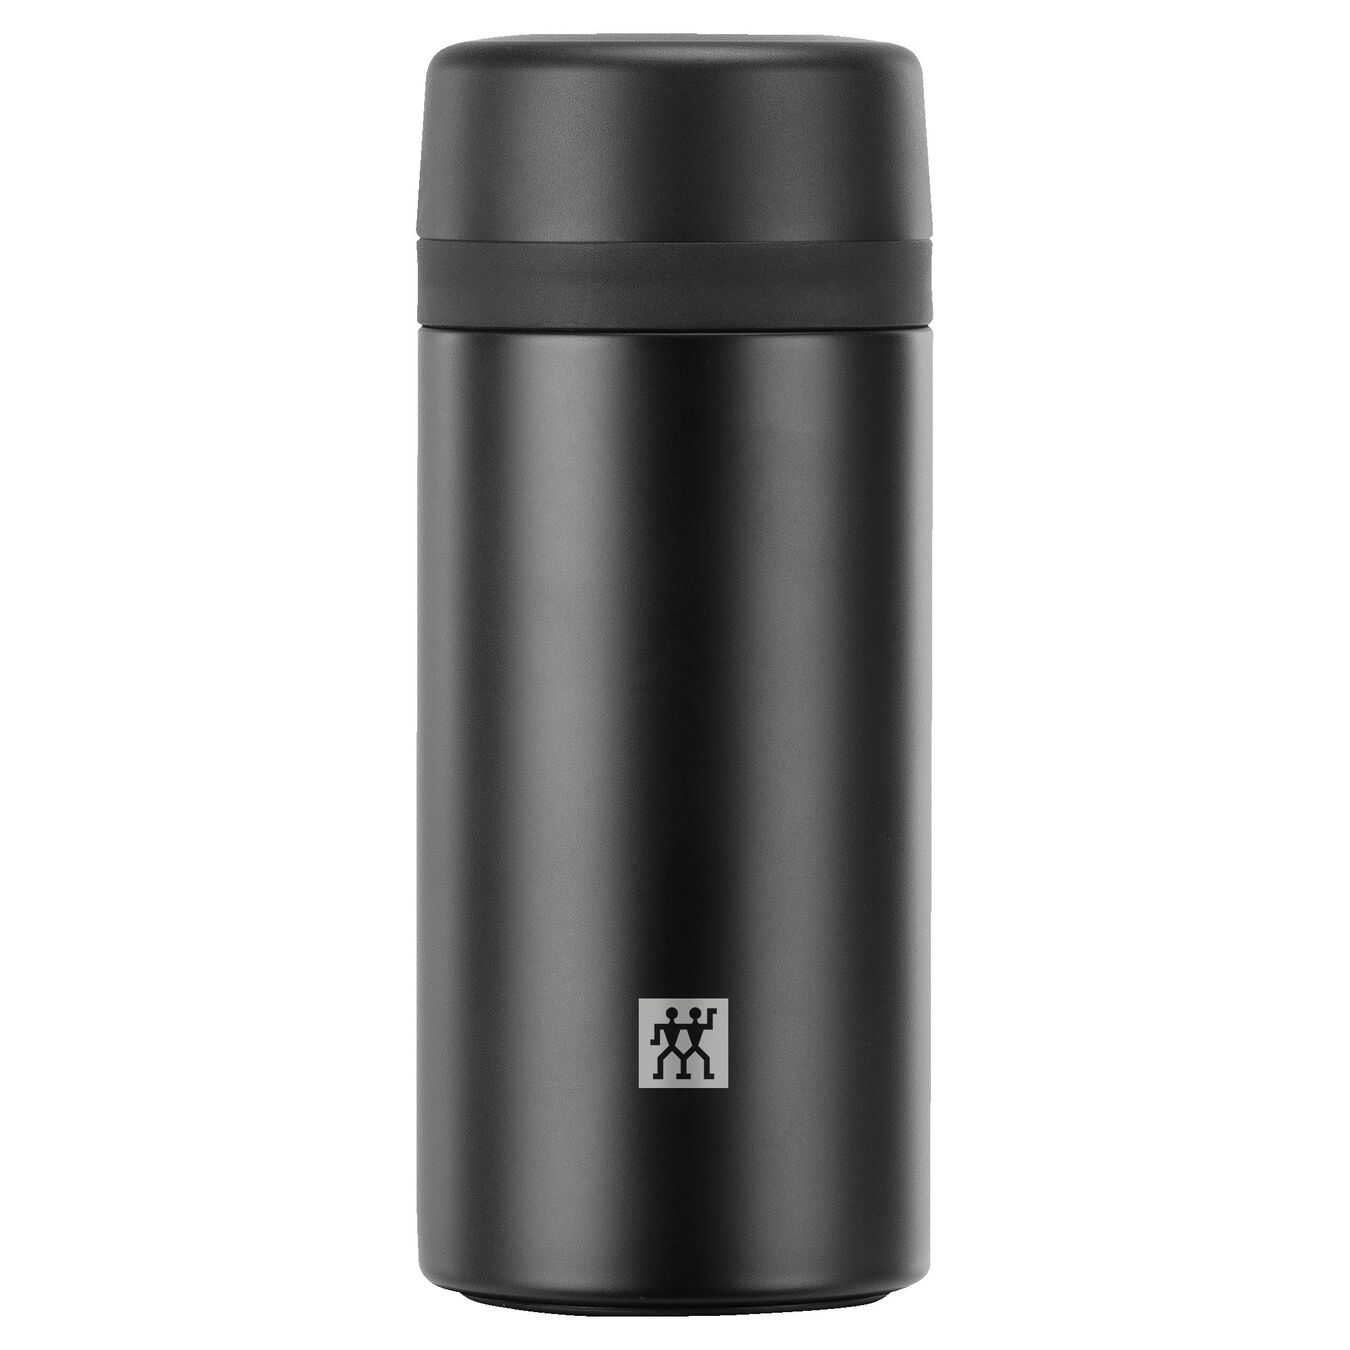 Bouteille isotherme, 420 ml | Noir,,large 1